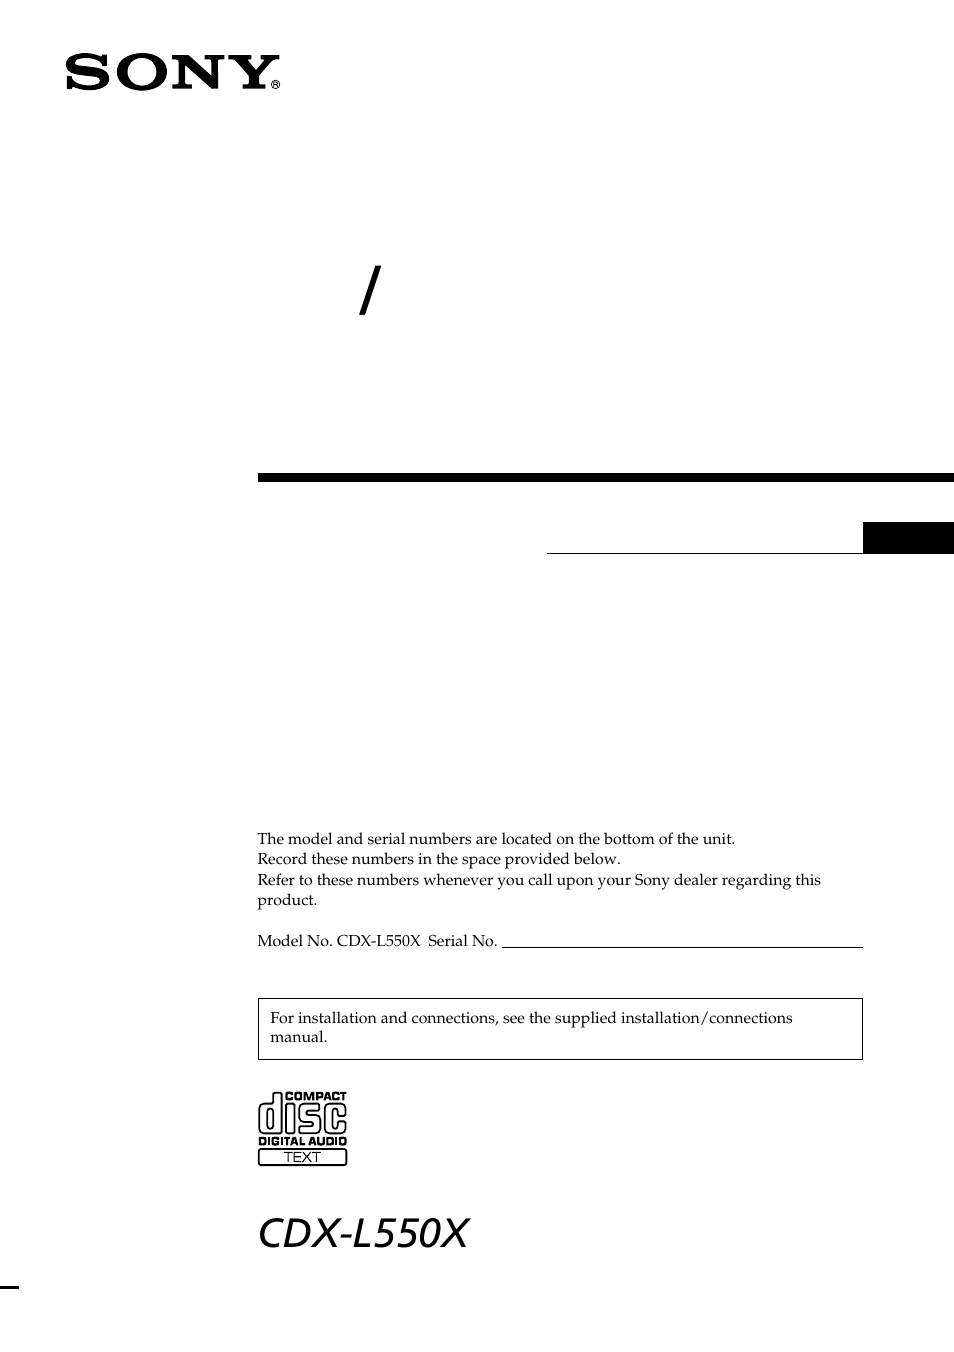 sony cdx l550x en user manual 24 pages also for cdx l550x cdx rh manualsdir com sony cdx-l550x wiring diagram sony cdx-l550v service manual